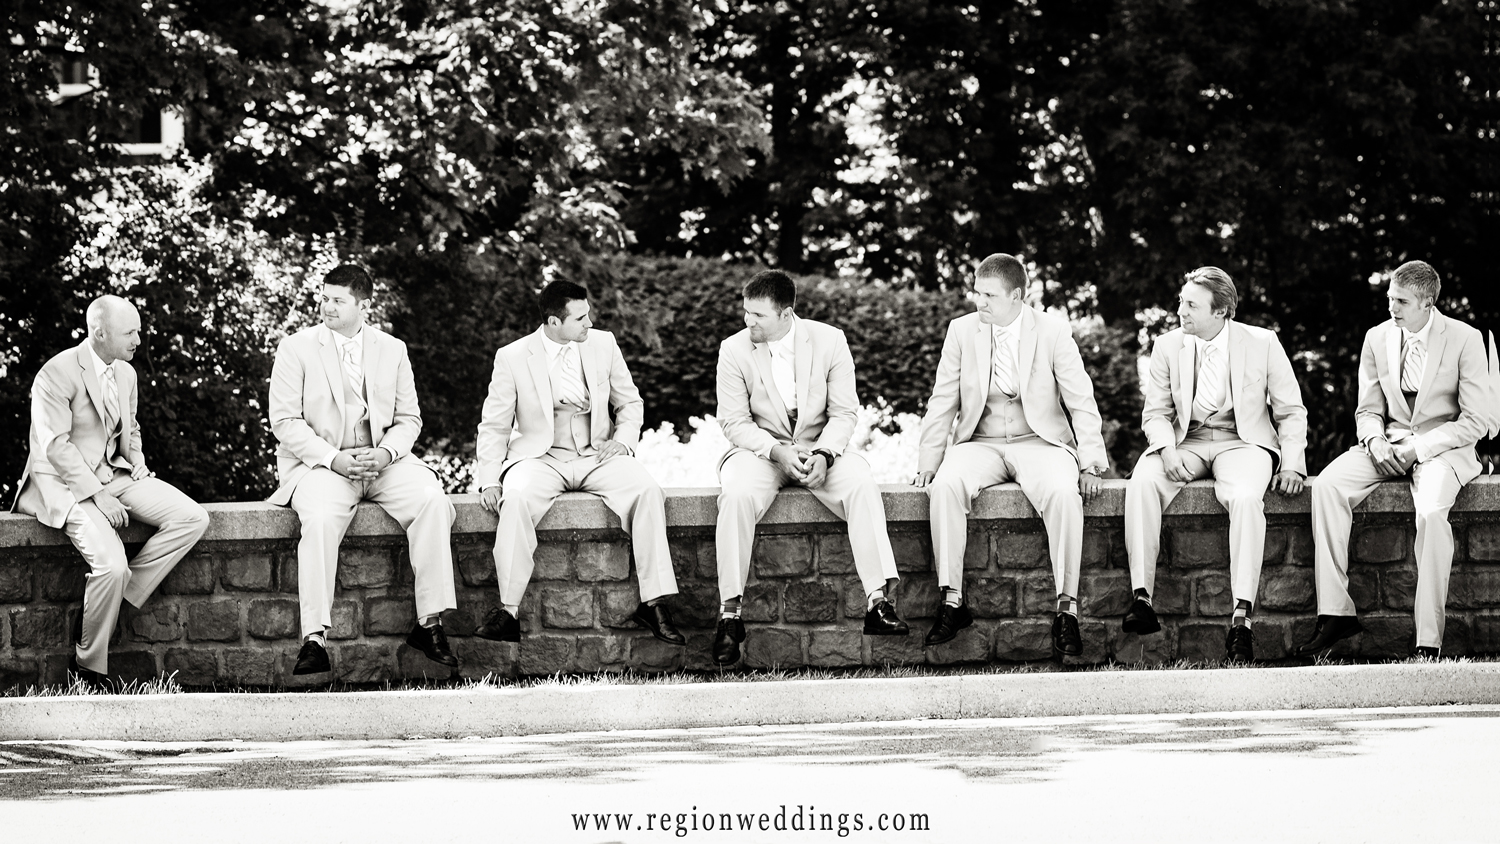 The groomsmen relax before the wedding ceremony at Aberdeen.